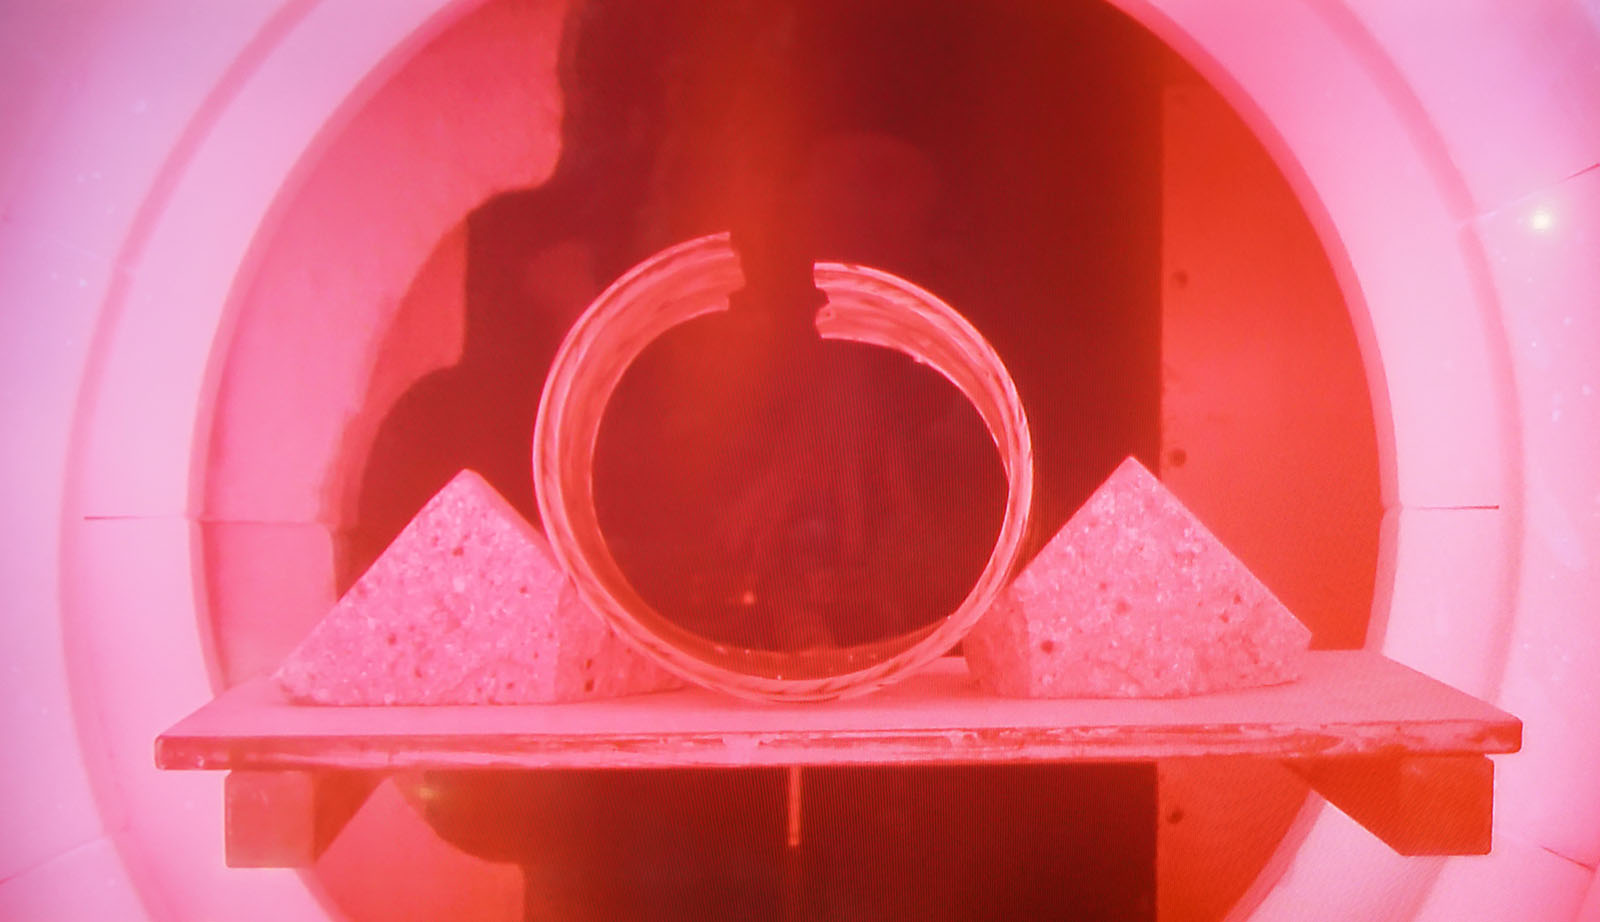 The split cylinder begins to soften in the heated chamber.